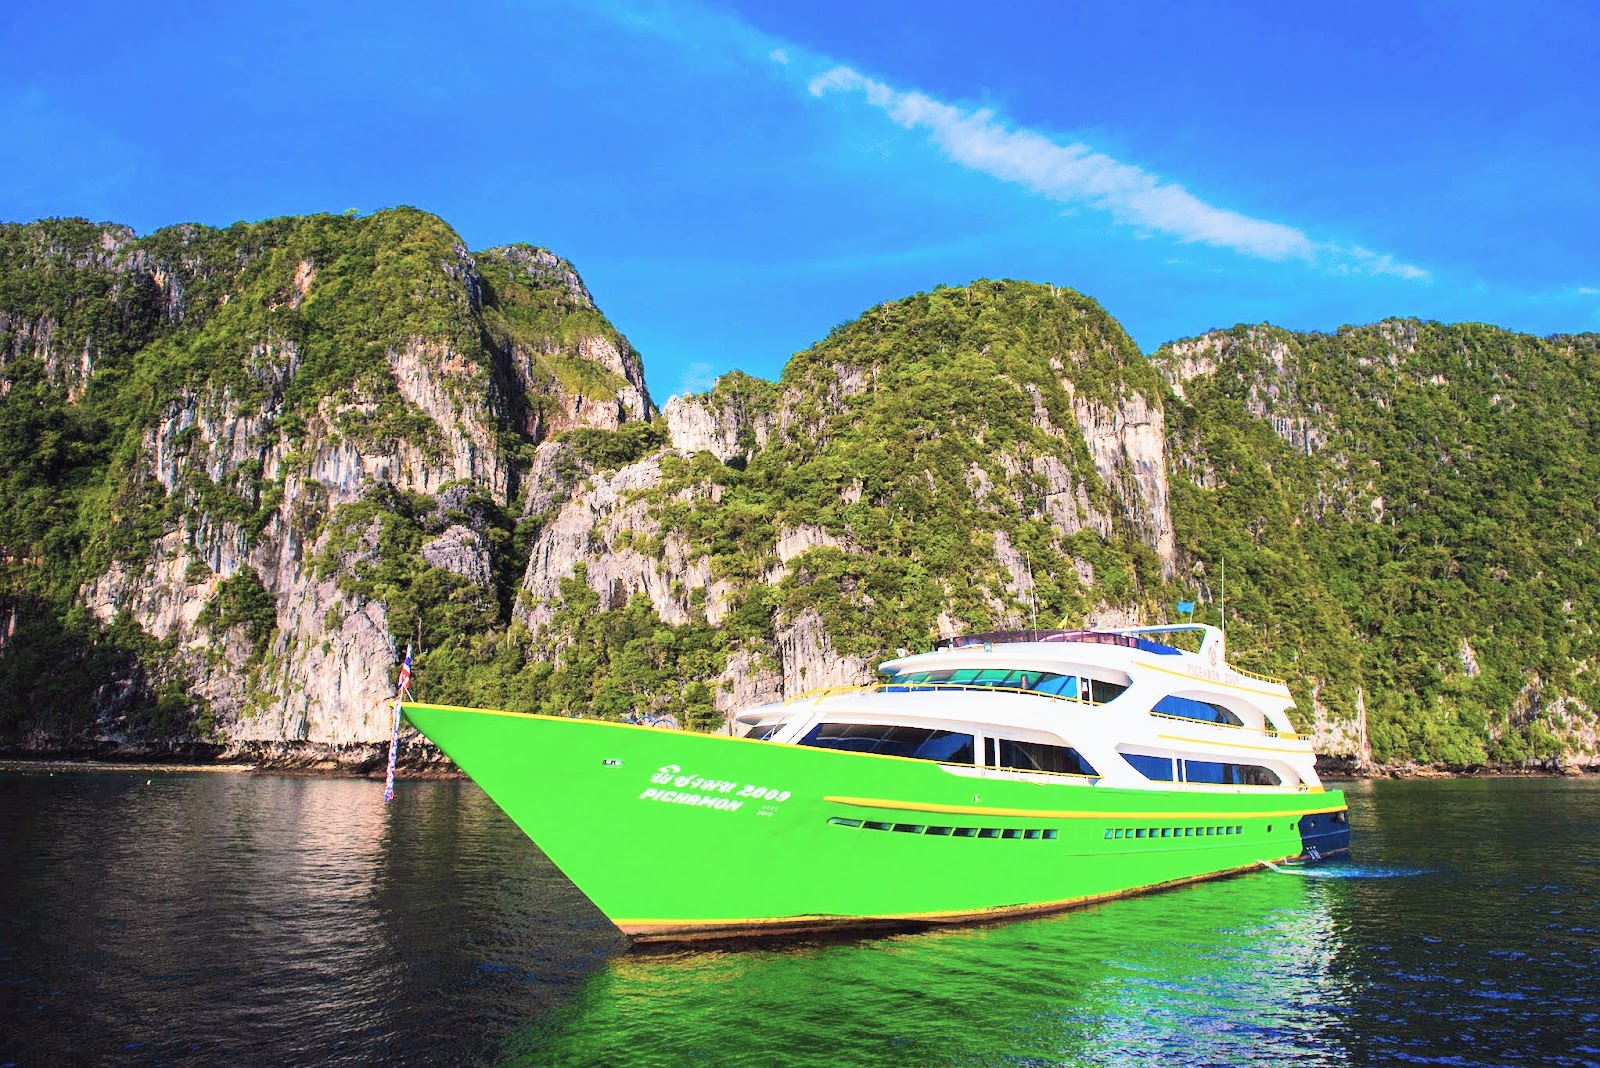 Travel from Koh Phi Phi to Koh Lanta by ferry